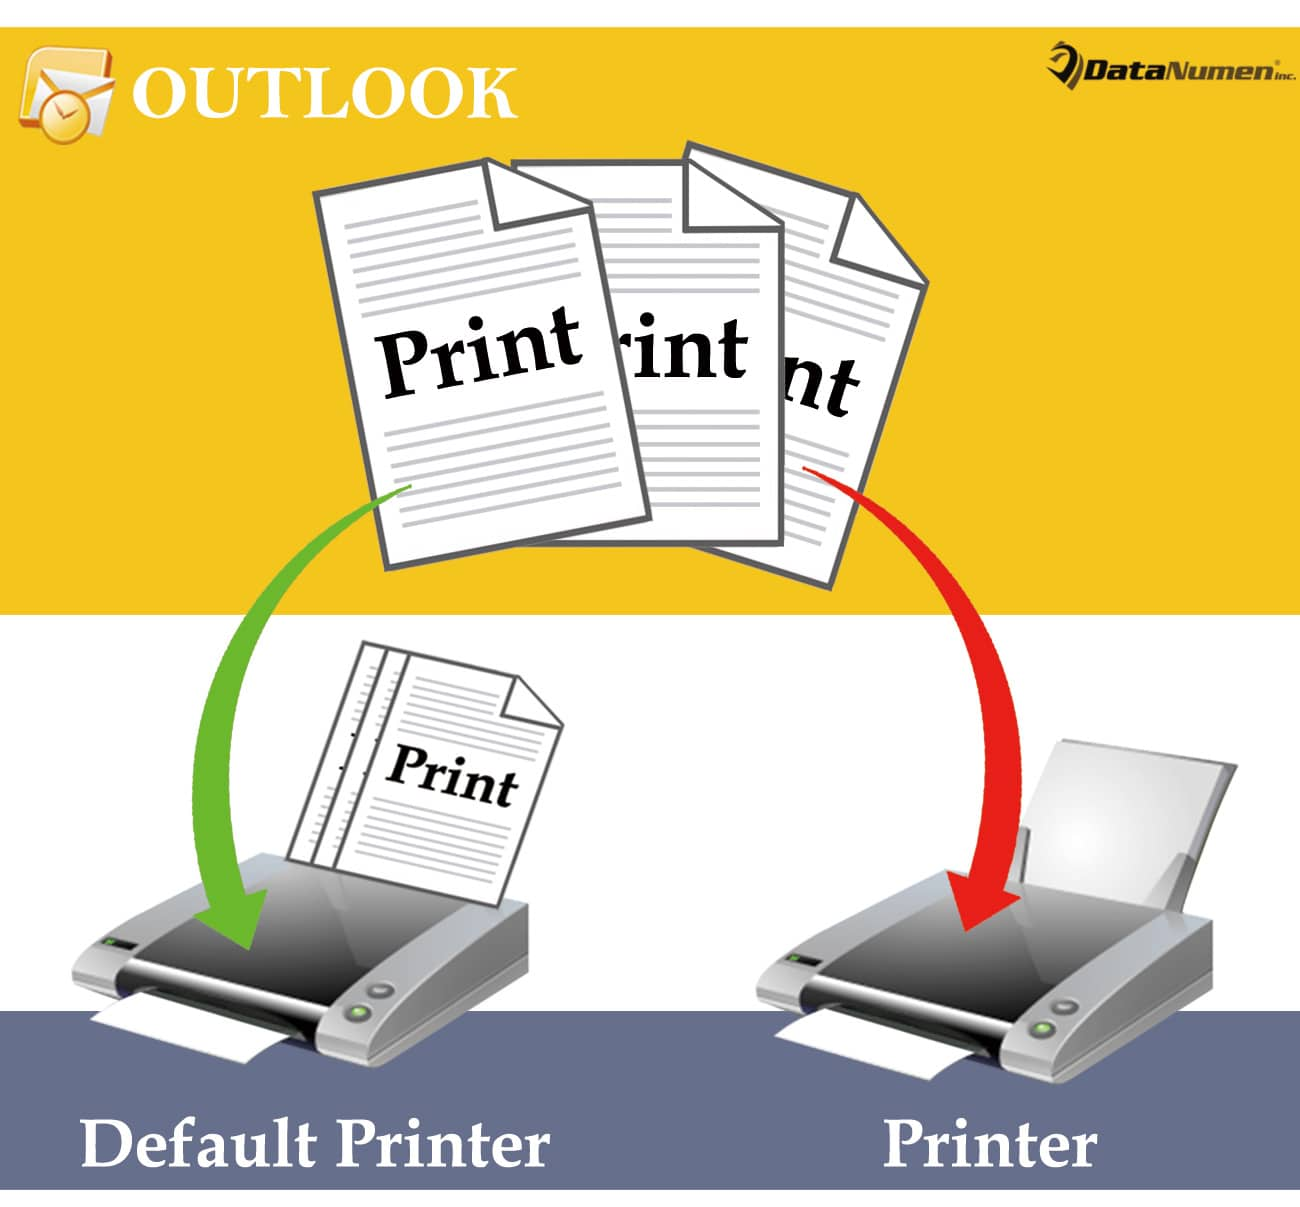 How to Auto Use a Specific Printer to Print Outlook Emails